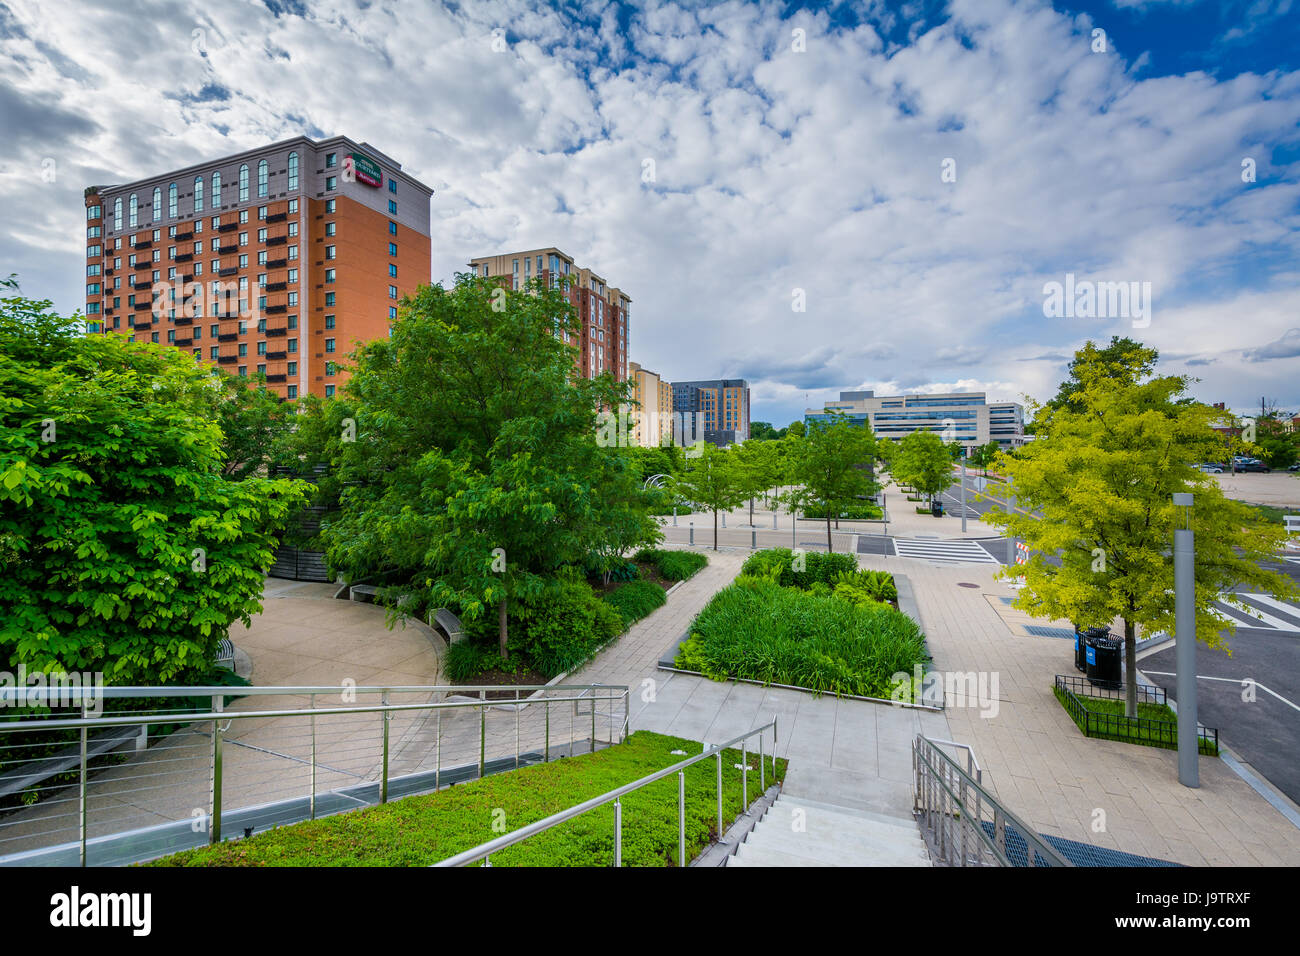 Gardens and trees at Canal Park in the Navy Yard neighborhood of Washington, DC. Stock Photo